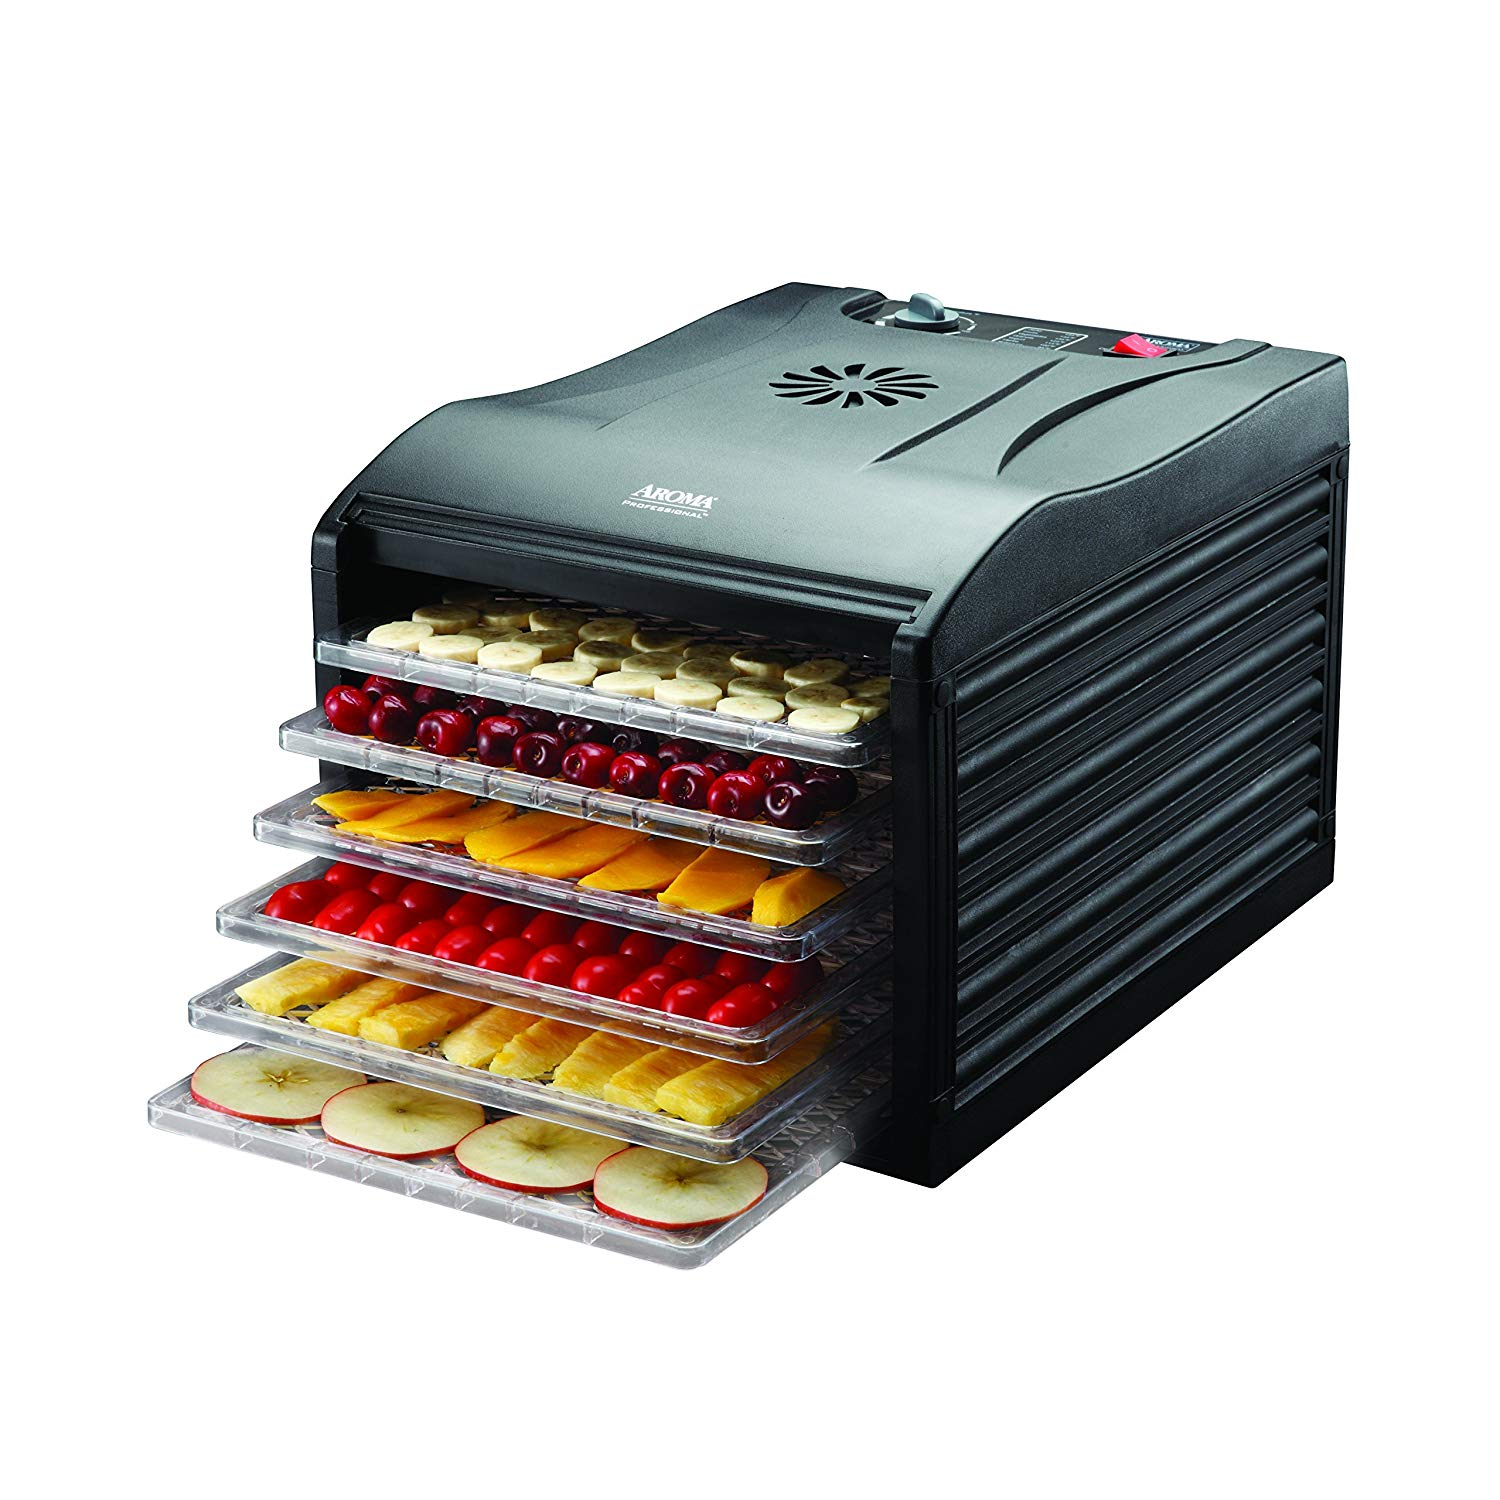 Aroma Housewares Professional 6 Tray Food Dehydrator Black